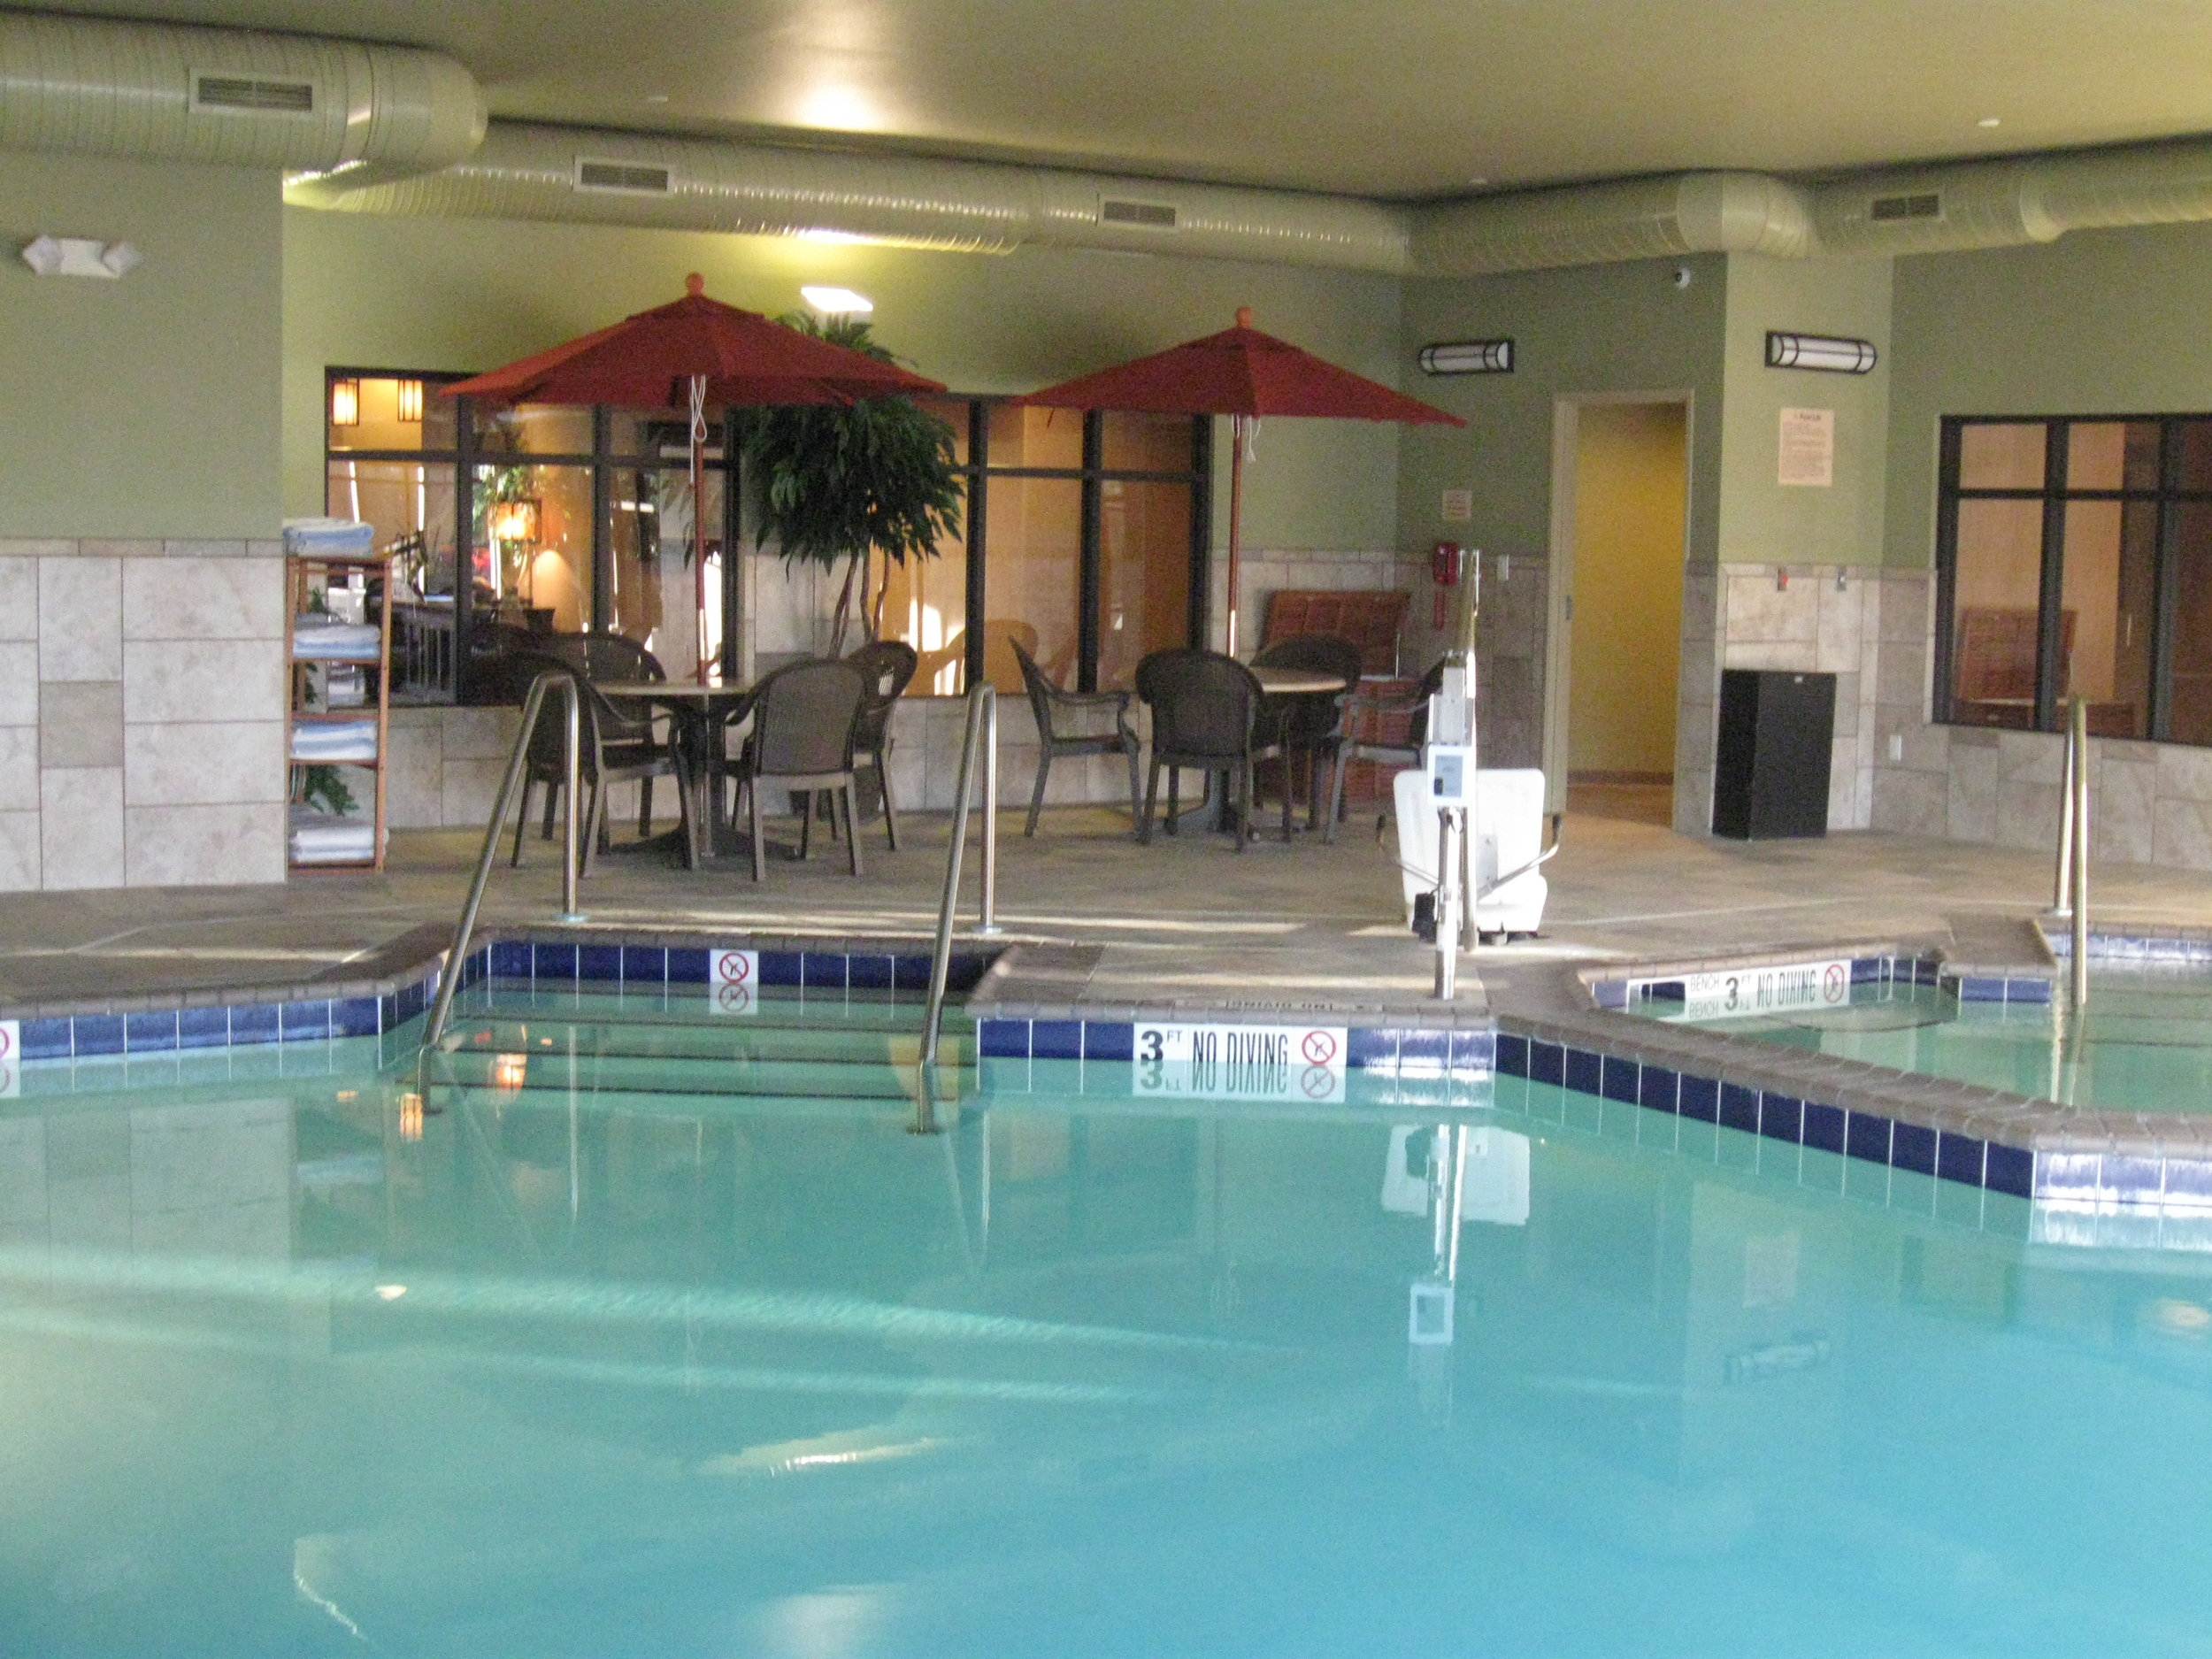 Pool in the Little Missouri Inn & Suites in Watford City, ND